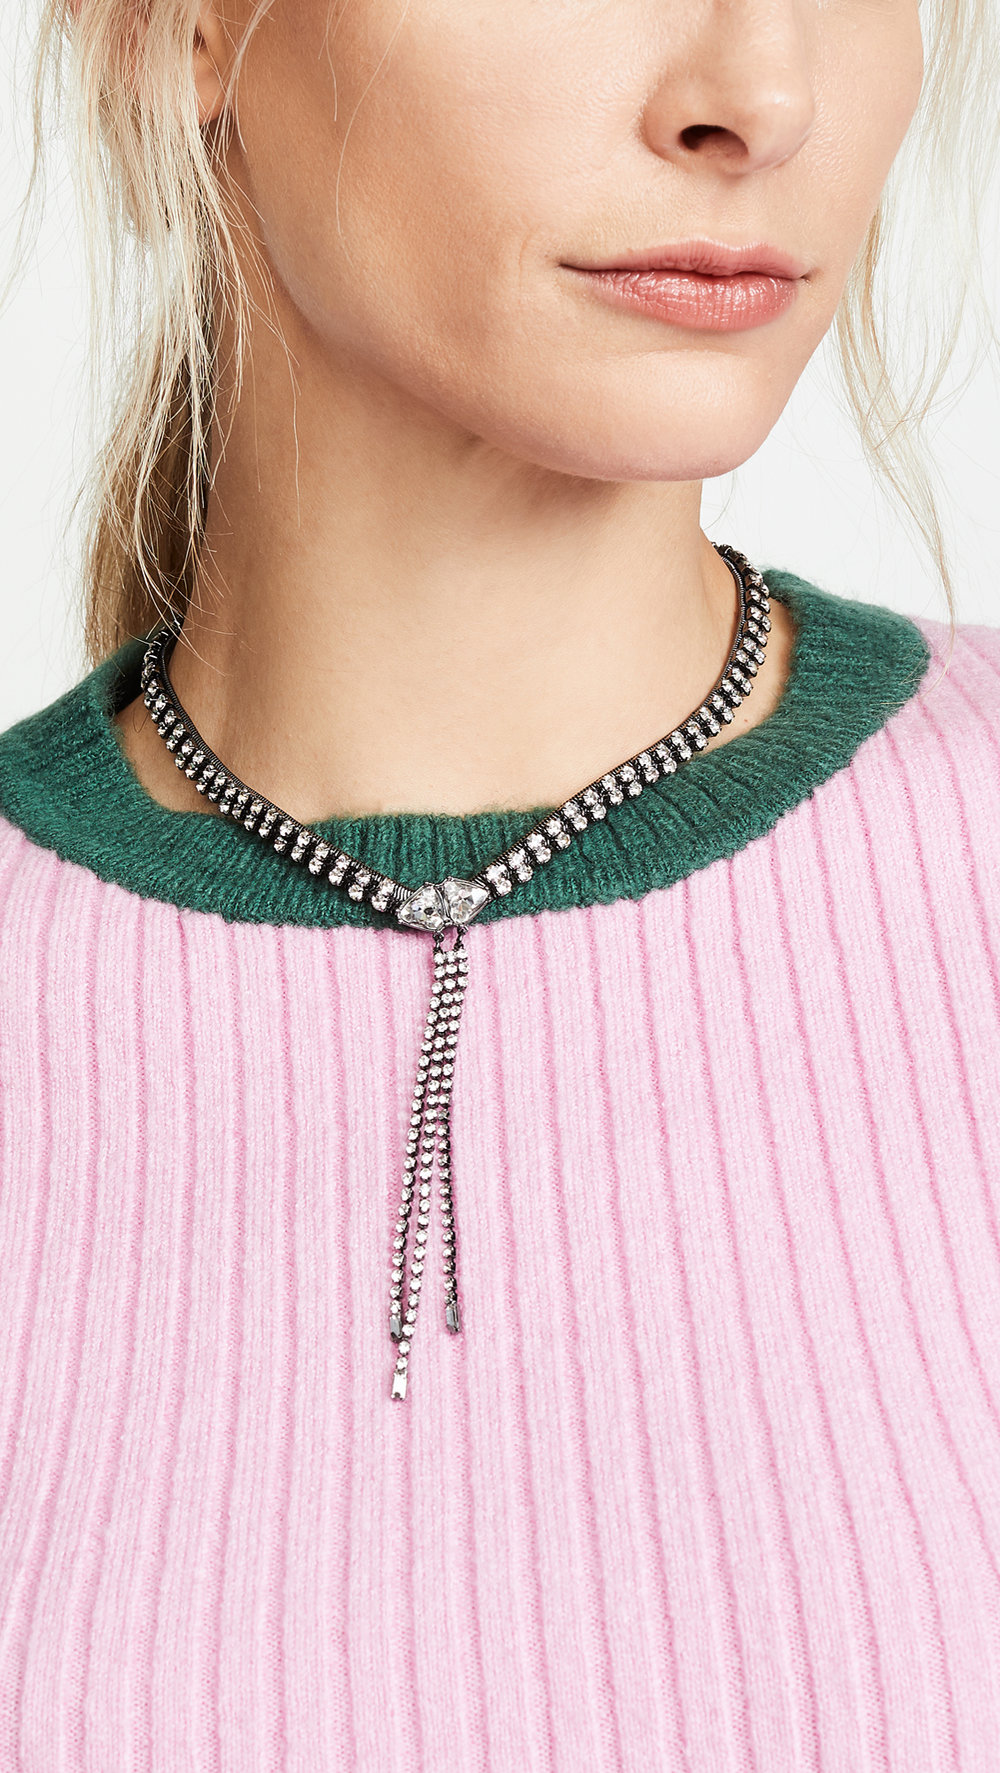 Rebecca Minkoff Crystal Necklace - Was: $78.00Now: $54.60